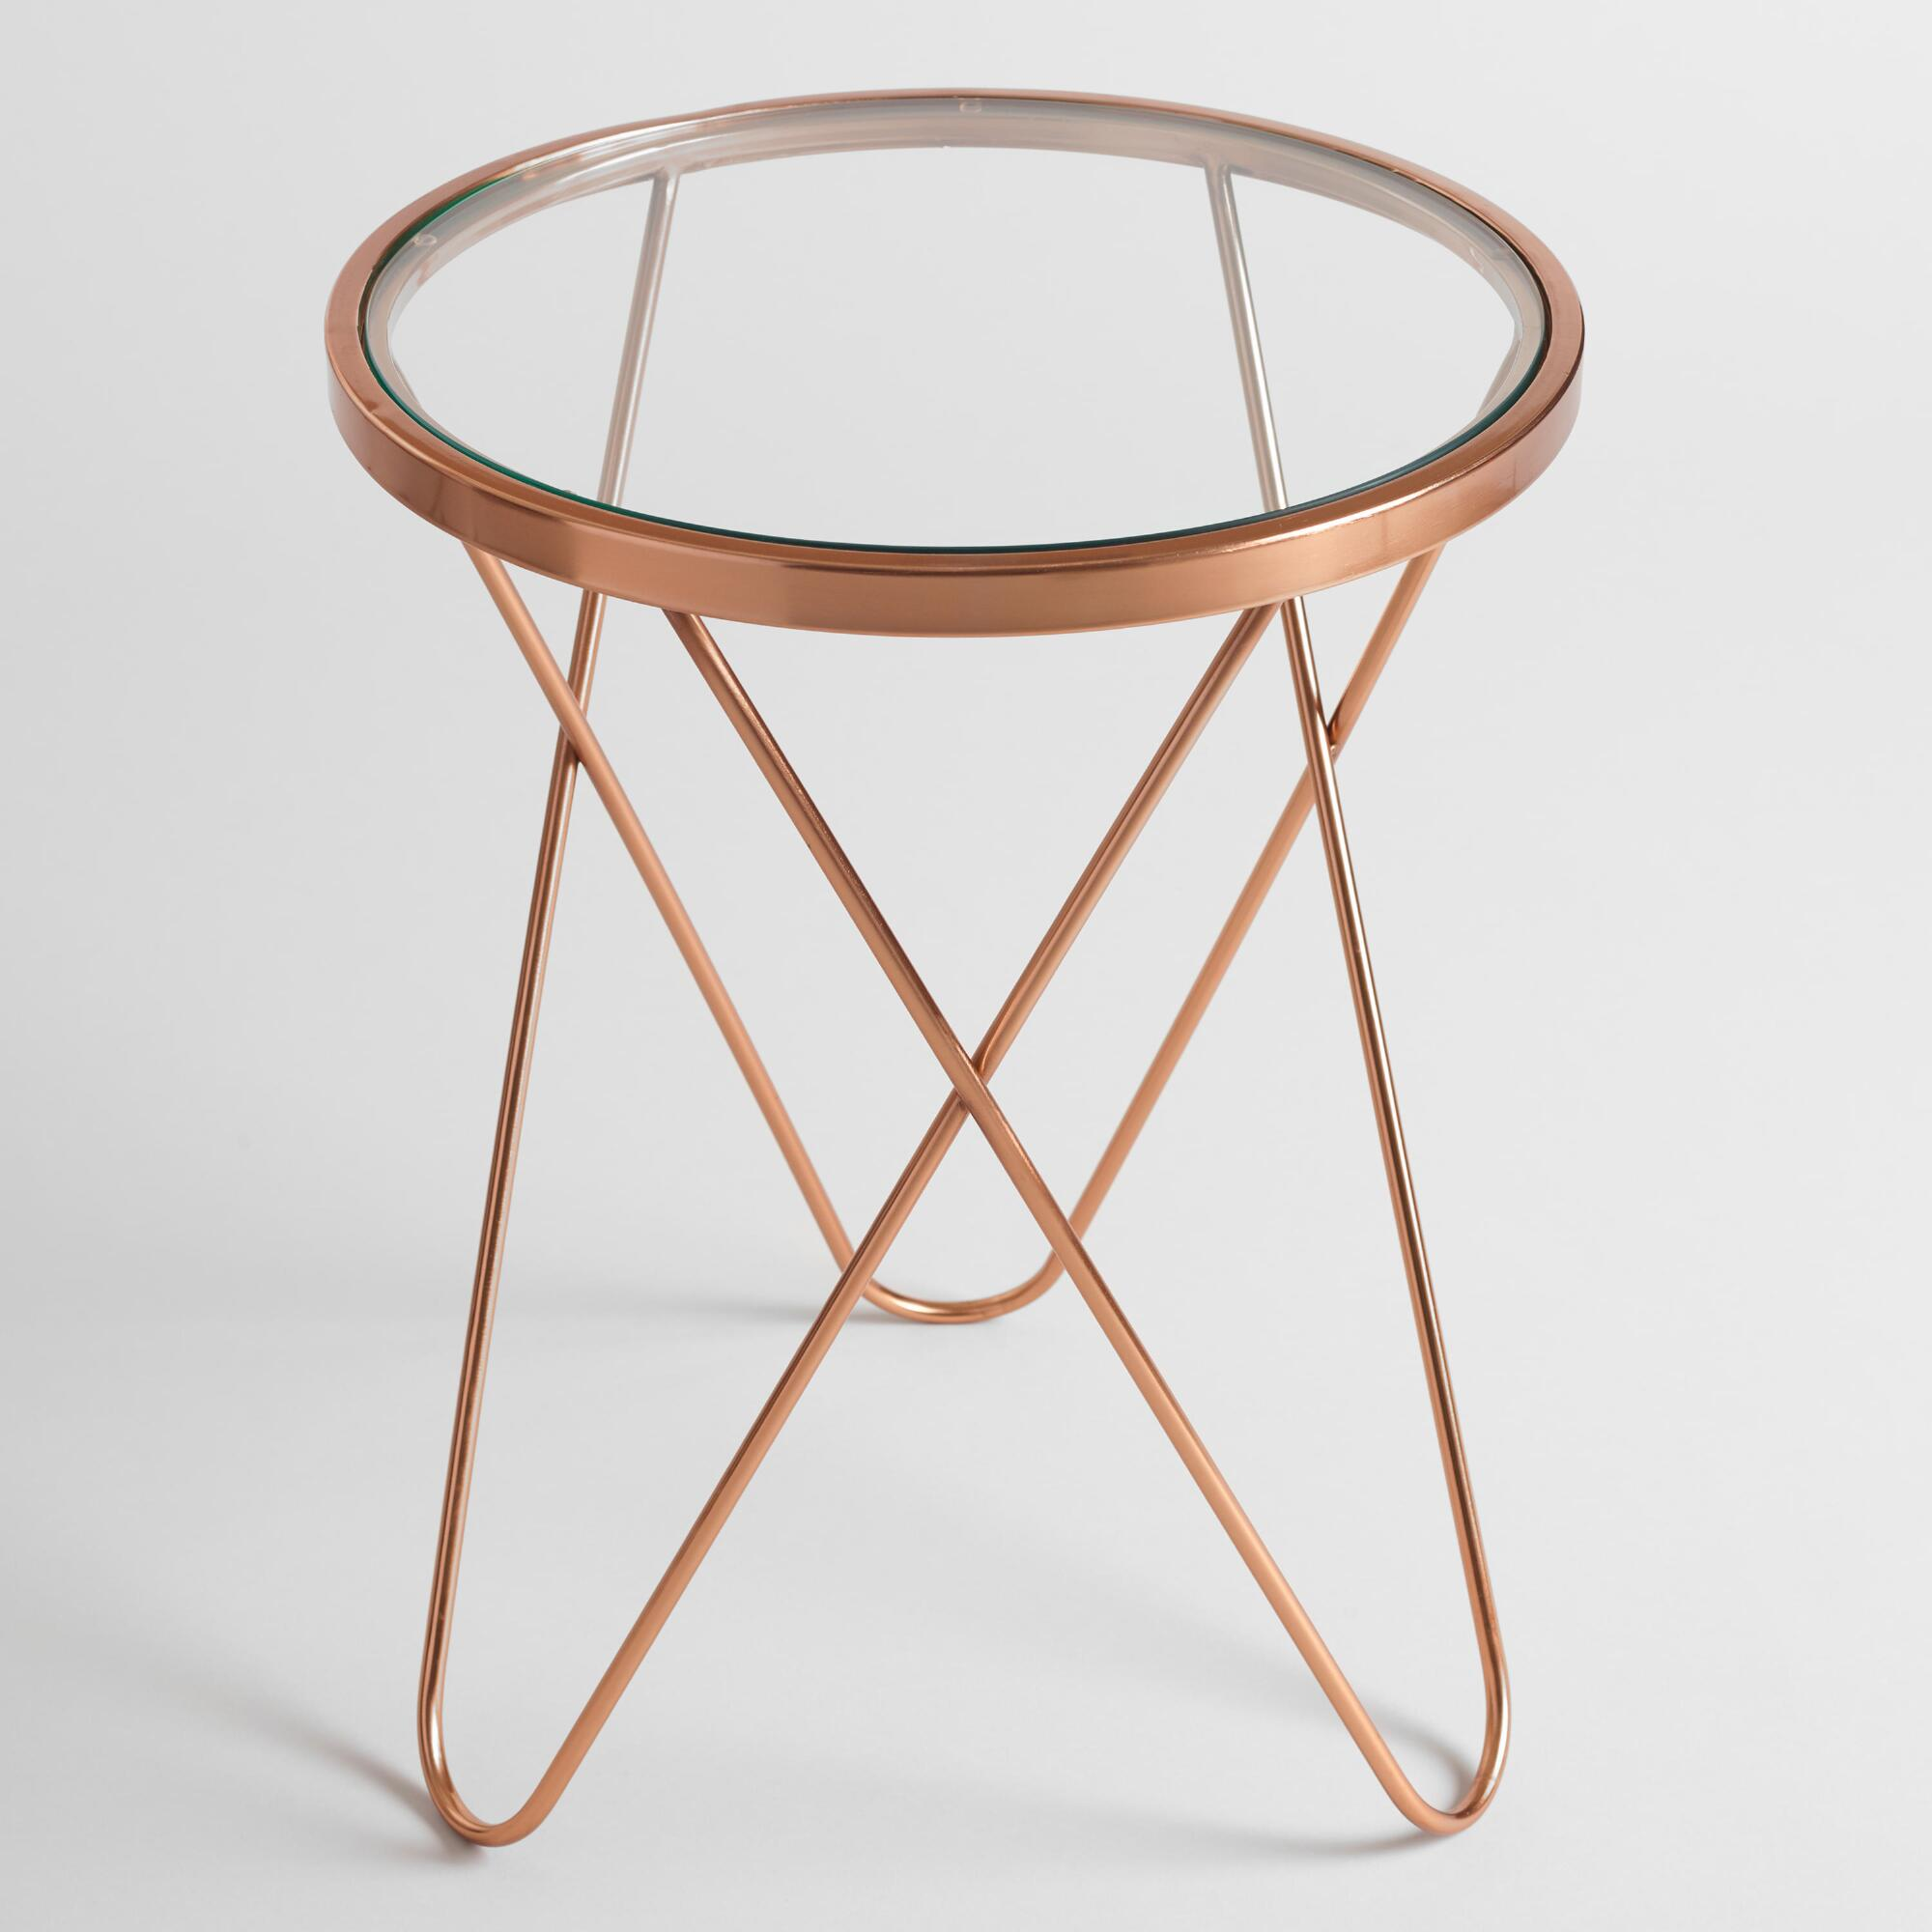 rose gold tomlin accent table with glass top world market iipsrv fcgi metal frame end best lamps solid wood nightstand seater dining center and side tables dinner ideas ikea west